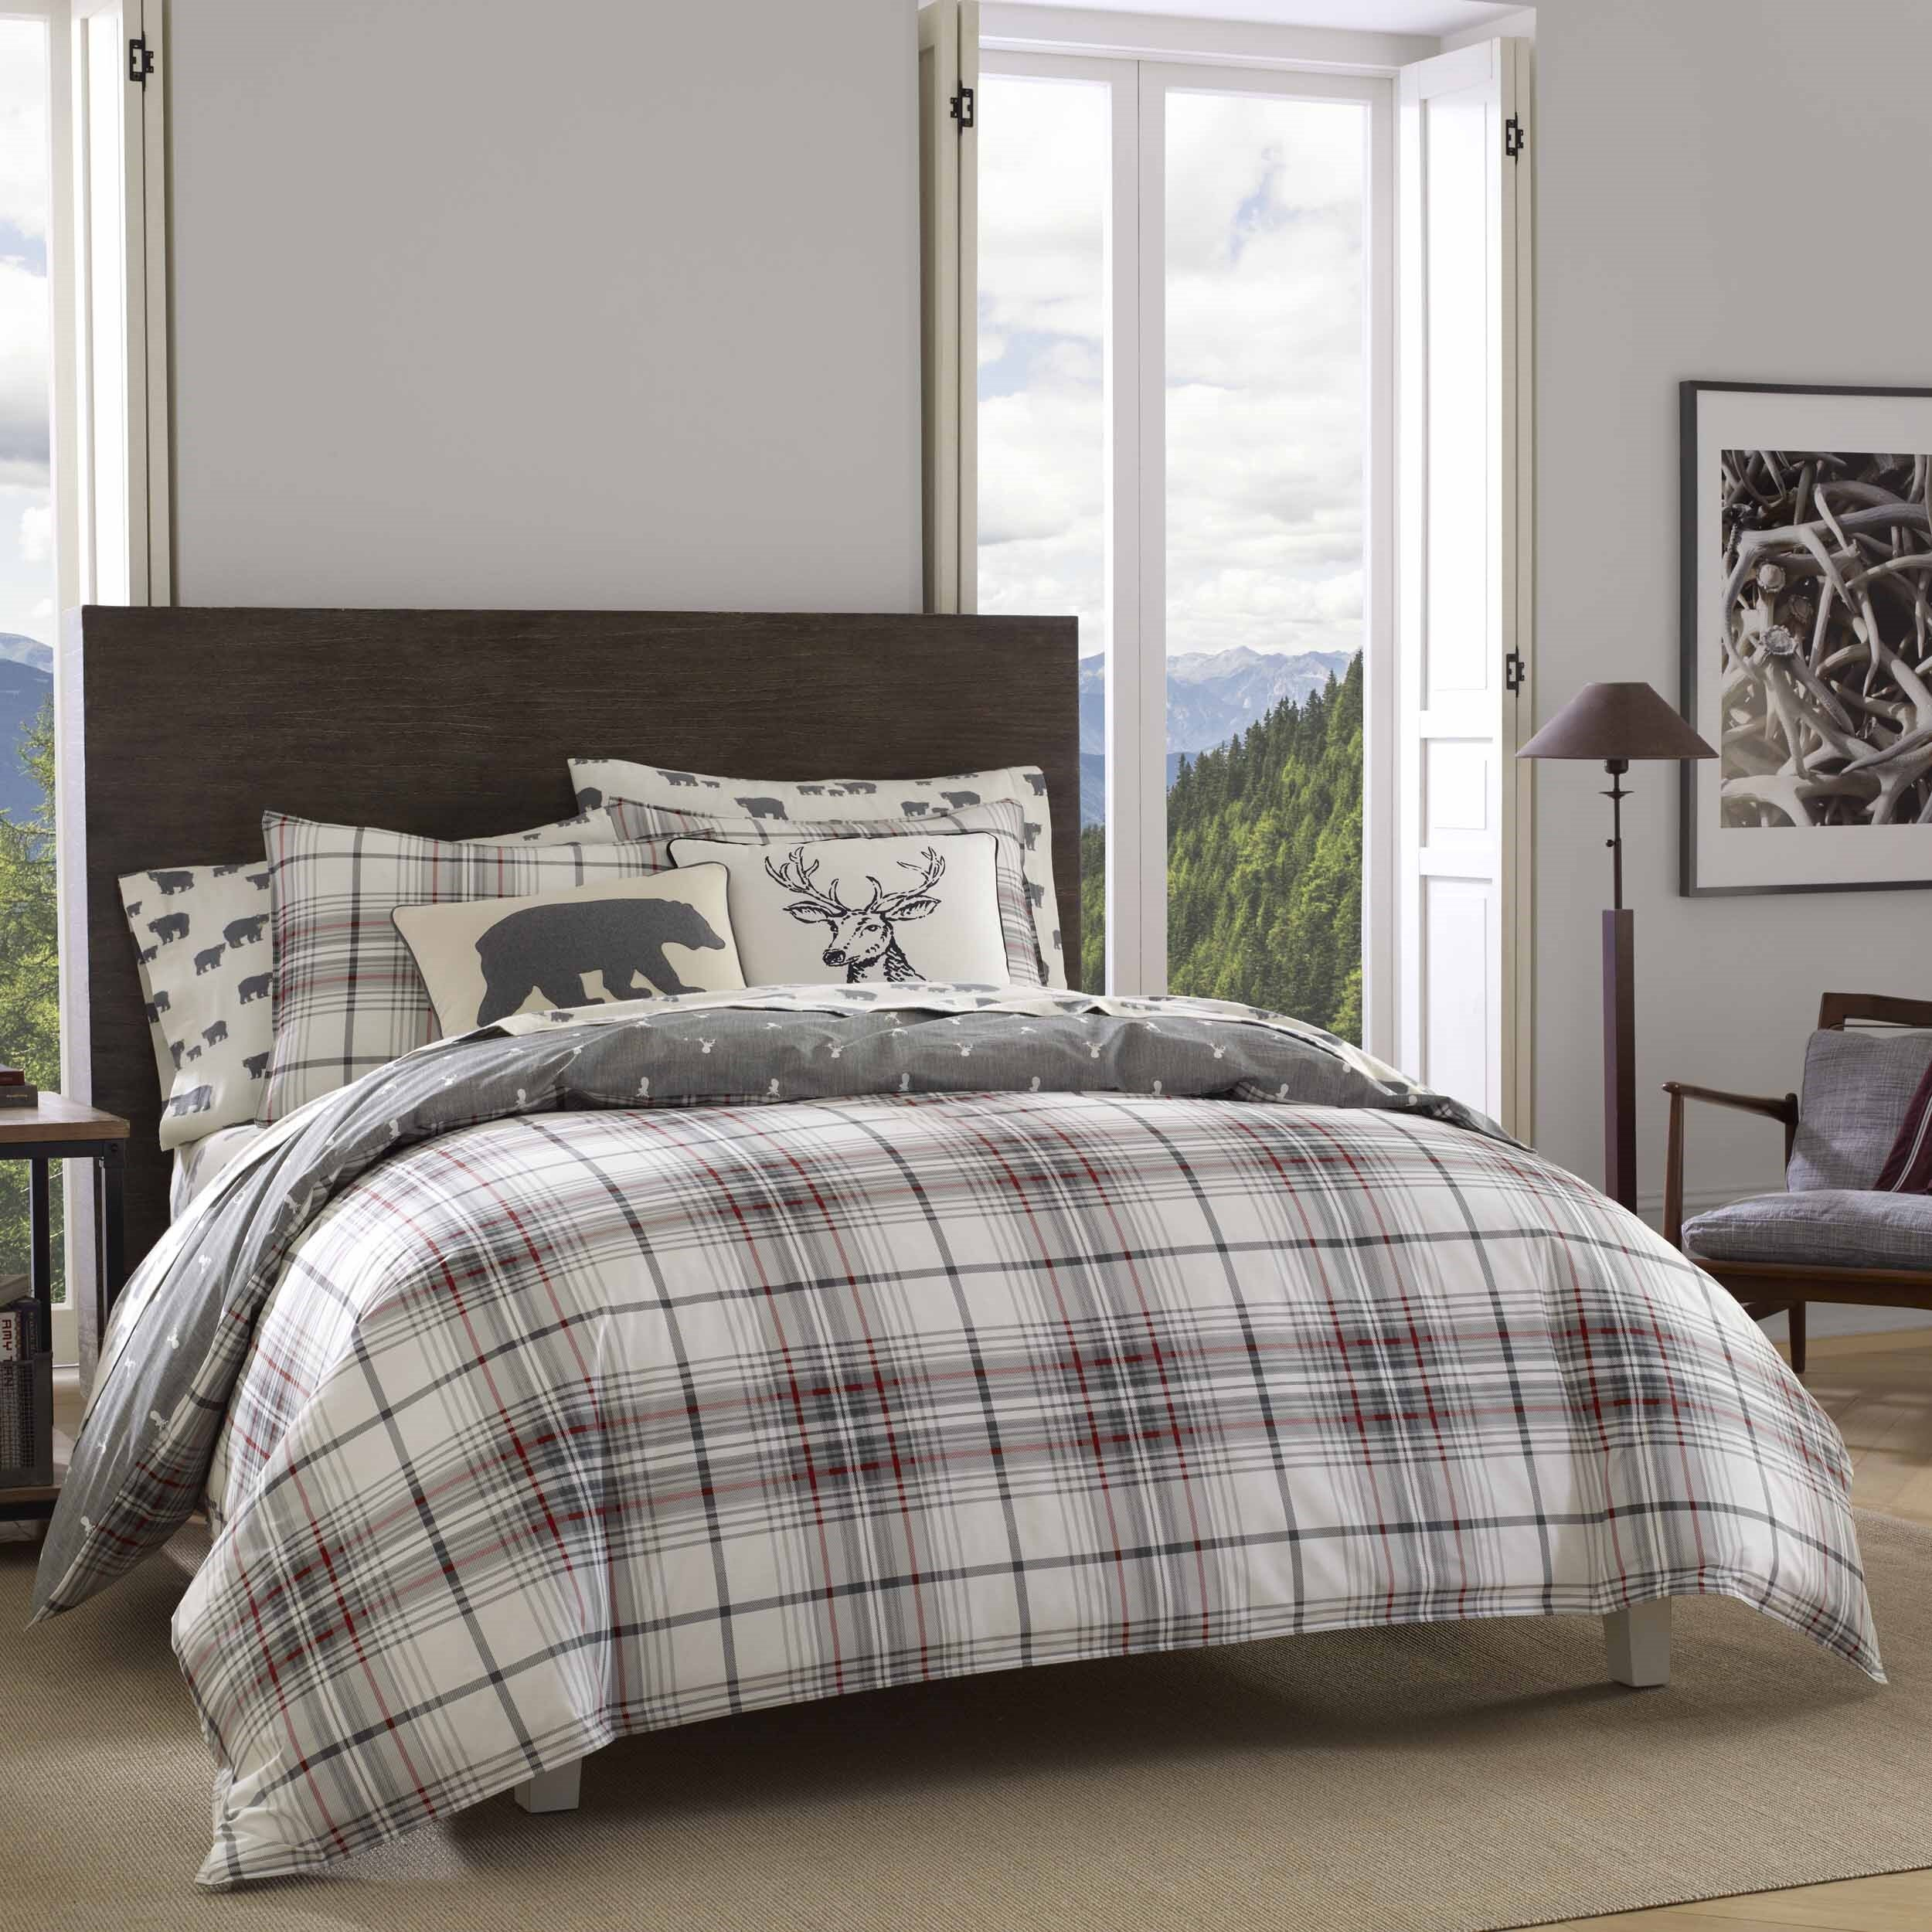 Wayfair Modern Farmhouse Bedding You Ll Love In 2021